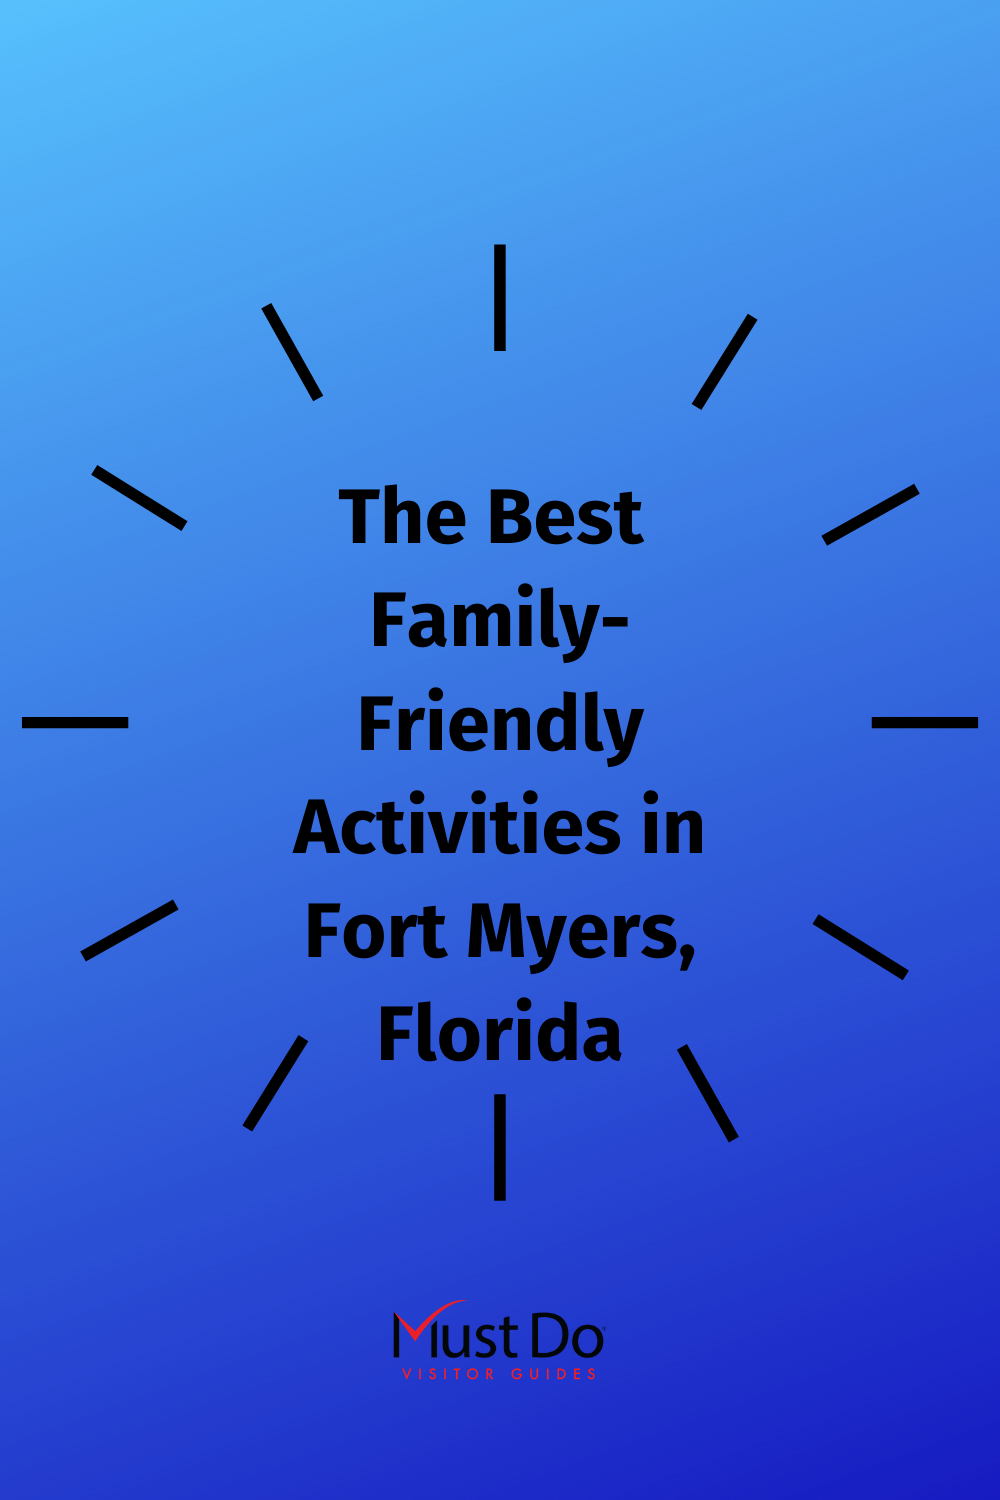 Headed on a Fort Myers, Florida family vacation? Here is a list of 12 of the best activities, tours, and attractions for kids of all ages. Must Do Visitor Guides | MustDo.com